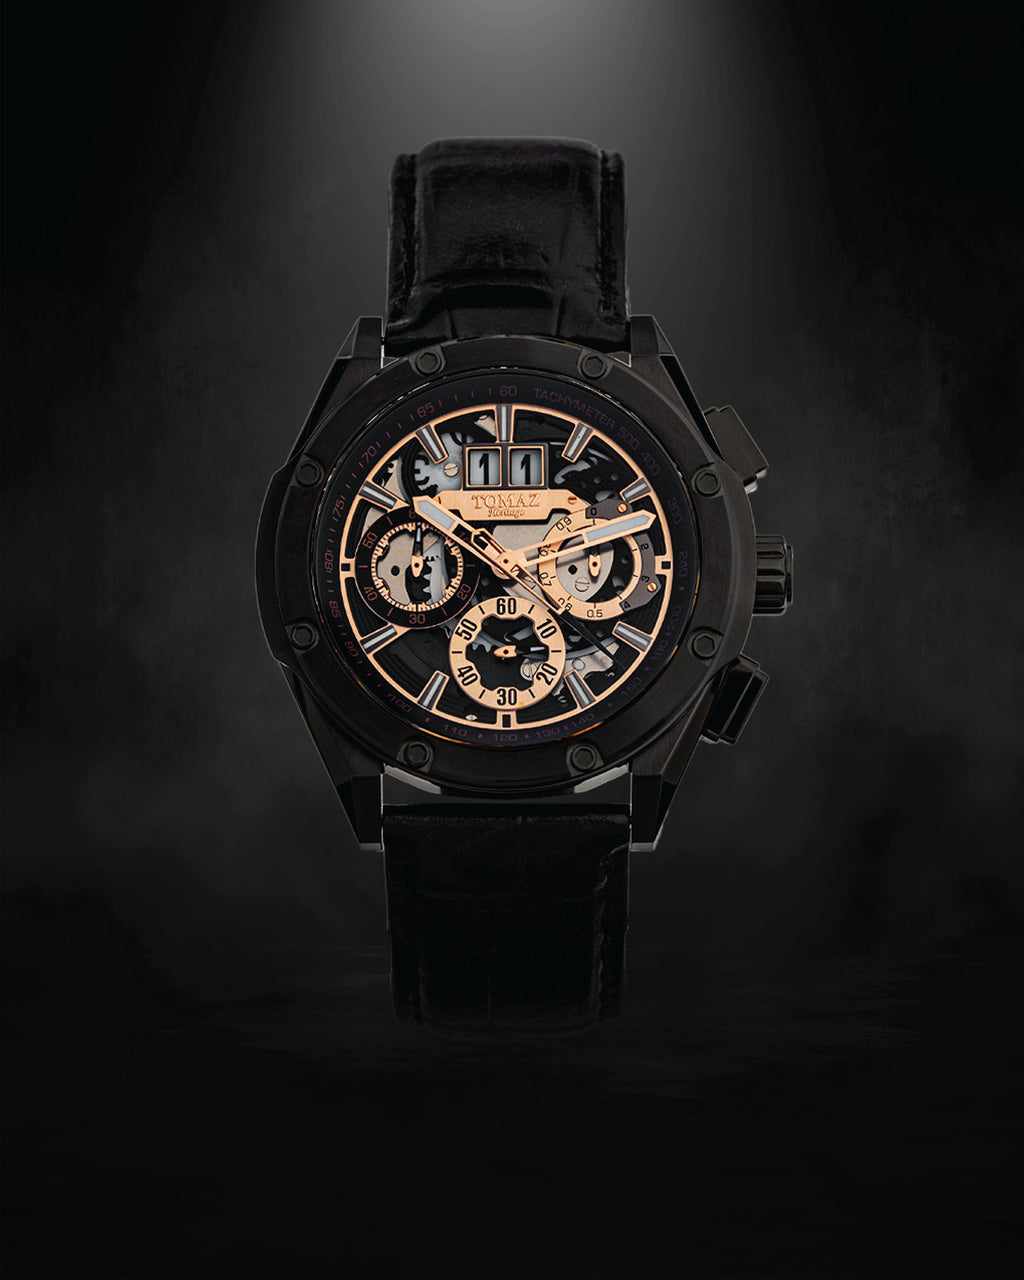 Tomaz Men's Watch RAWR III (Black/Gold) -TW024B-D1